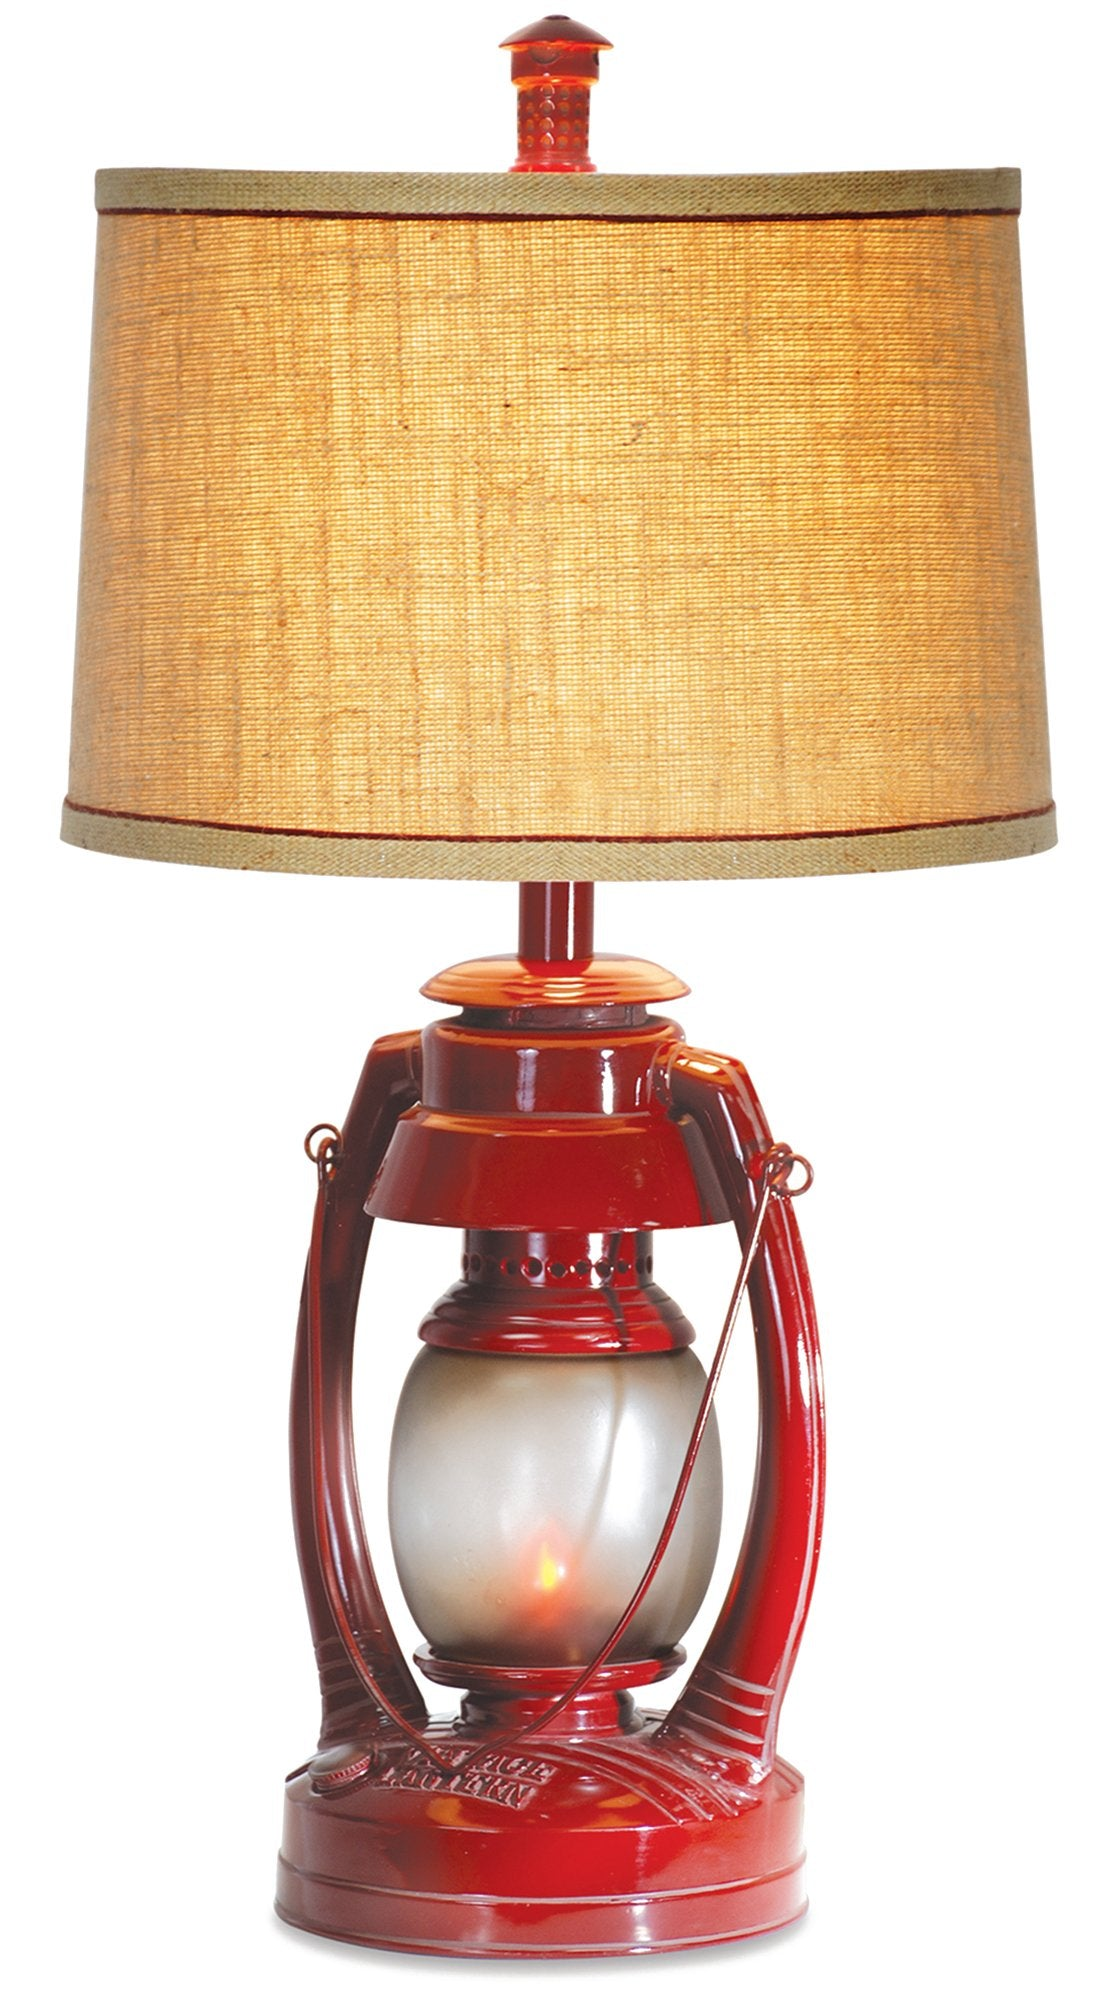 CL2395S -  VINTAGE LANTERN TABLE LAMP by Vintage Direct Lamps - ThunderHorseCabin.com